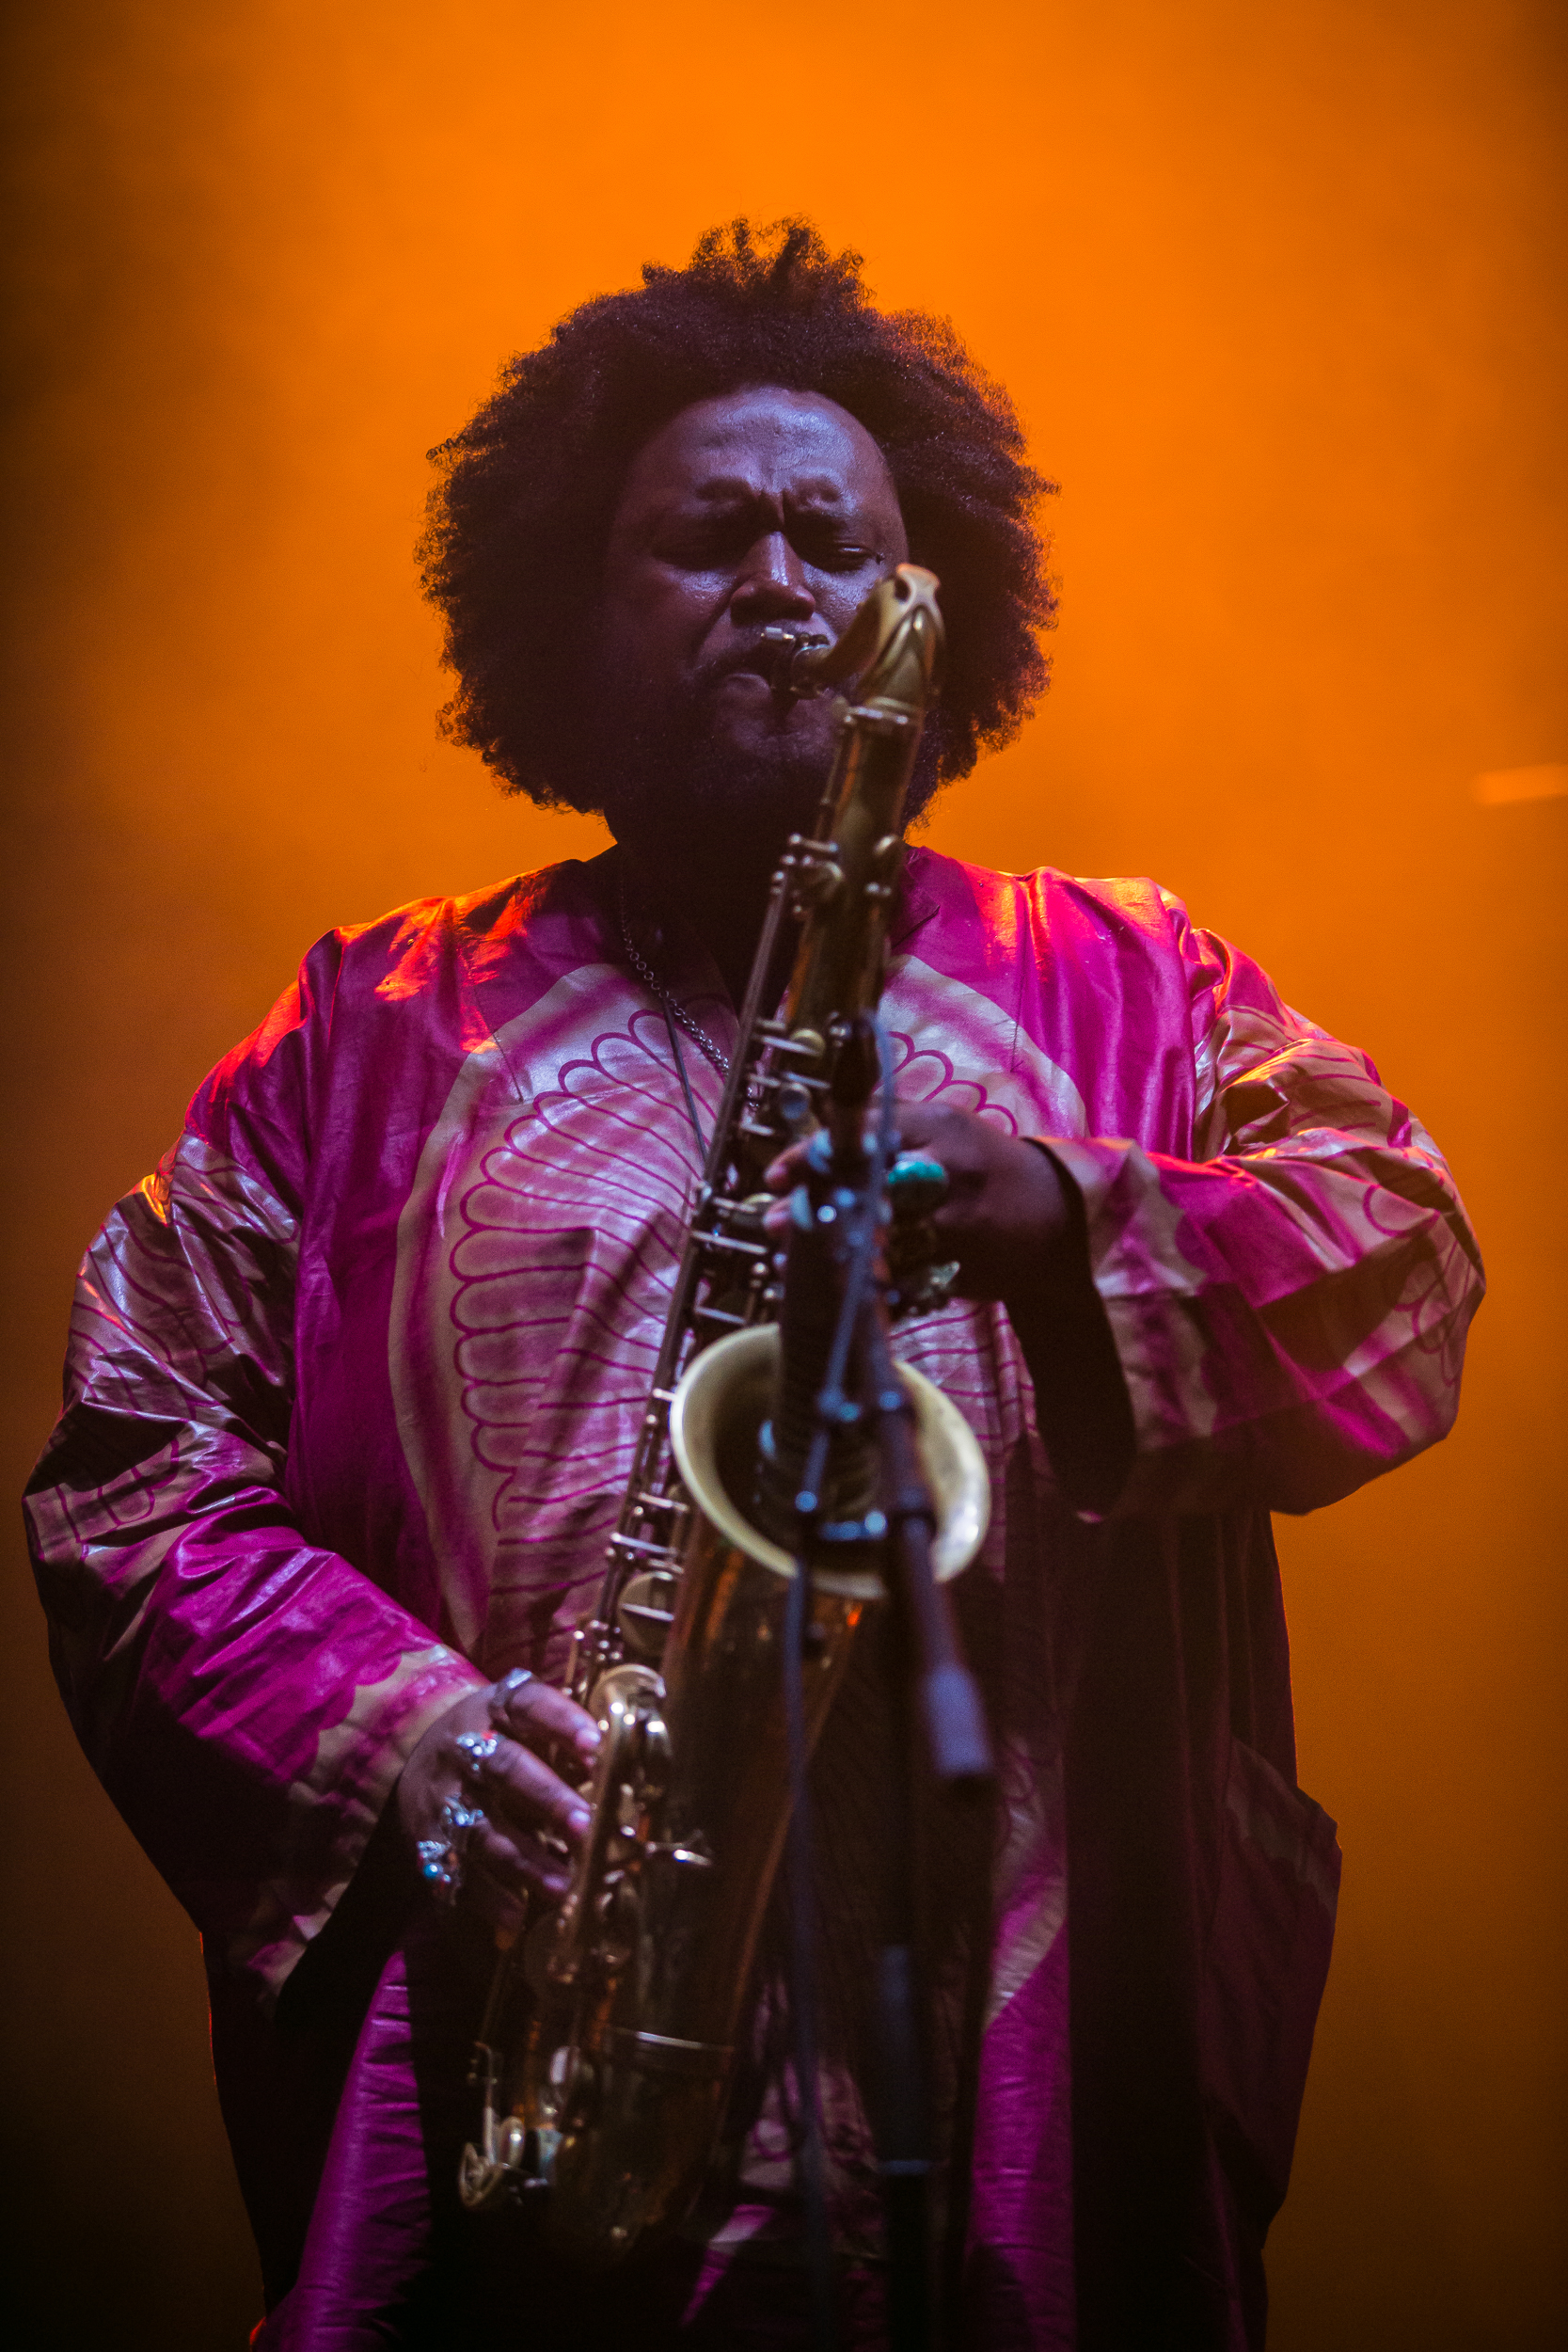 Kamasi Washington live at Primavera Sound 2016, Barcelona.